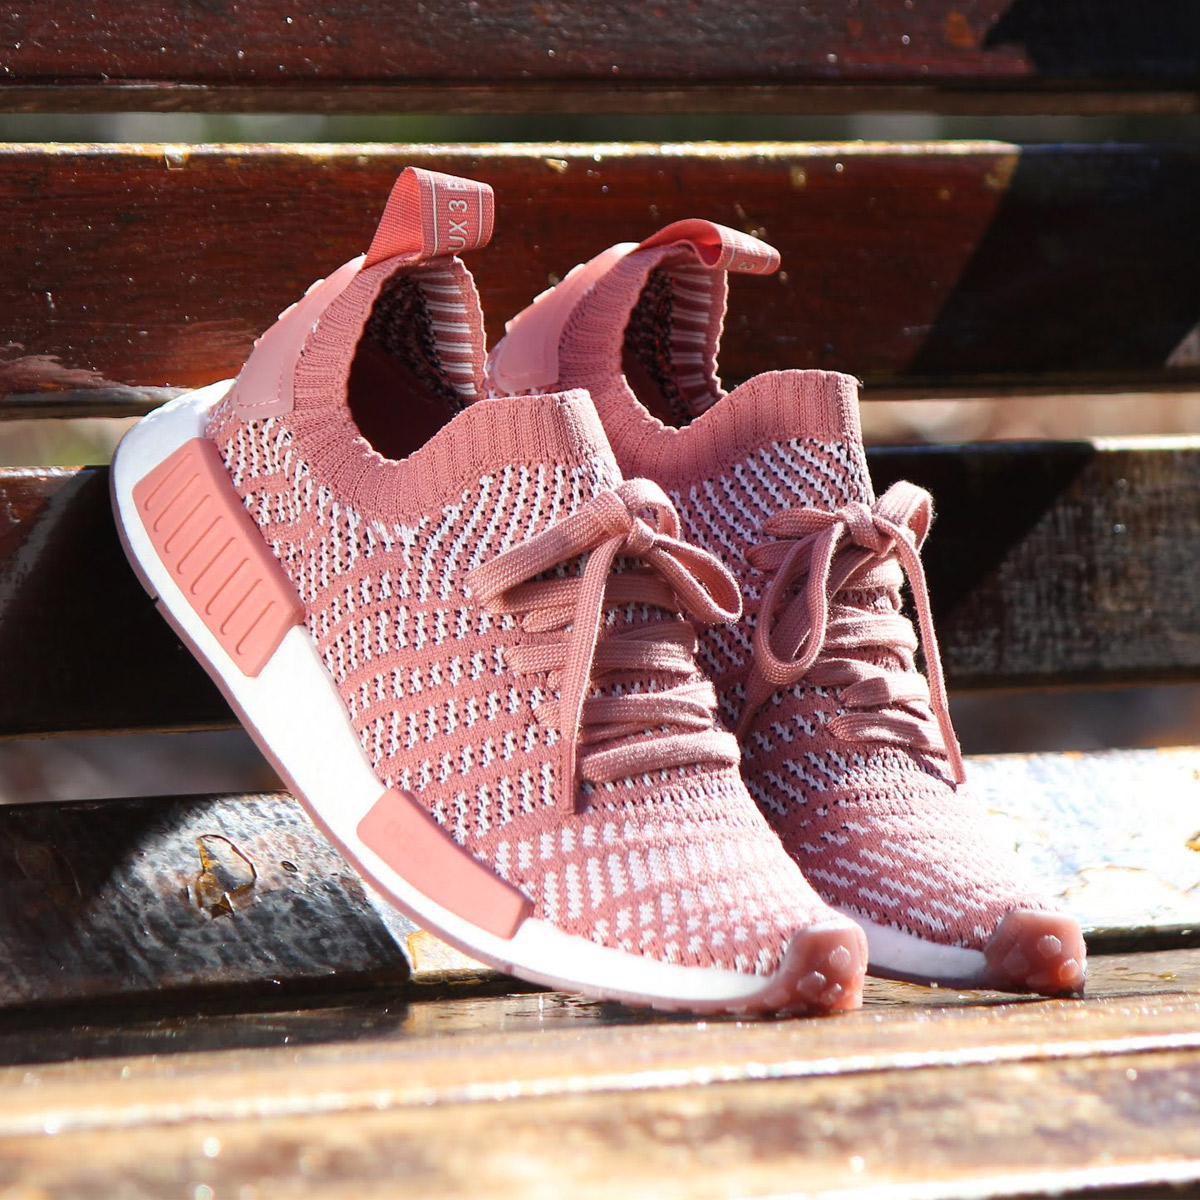 uk availability 21a2a 5130b adidas Originals NMD R1 STLT PK W (Adidas originals N M D R1 STLT PK W) Ash  Pink/Orchid Tint/Running White 18SS-S